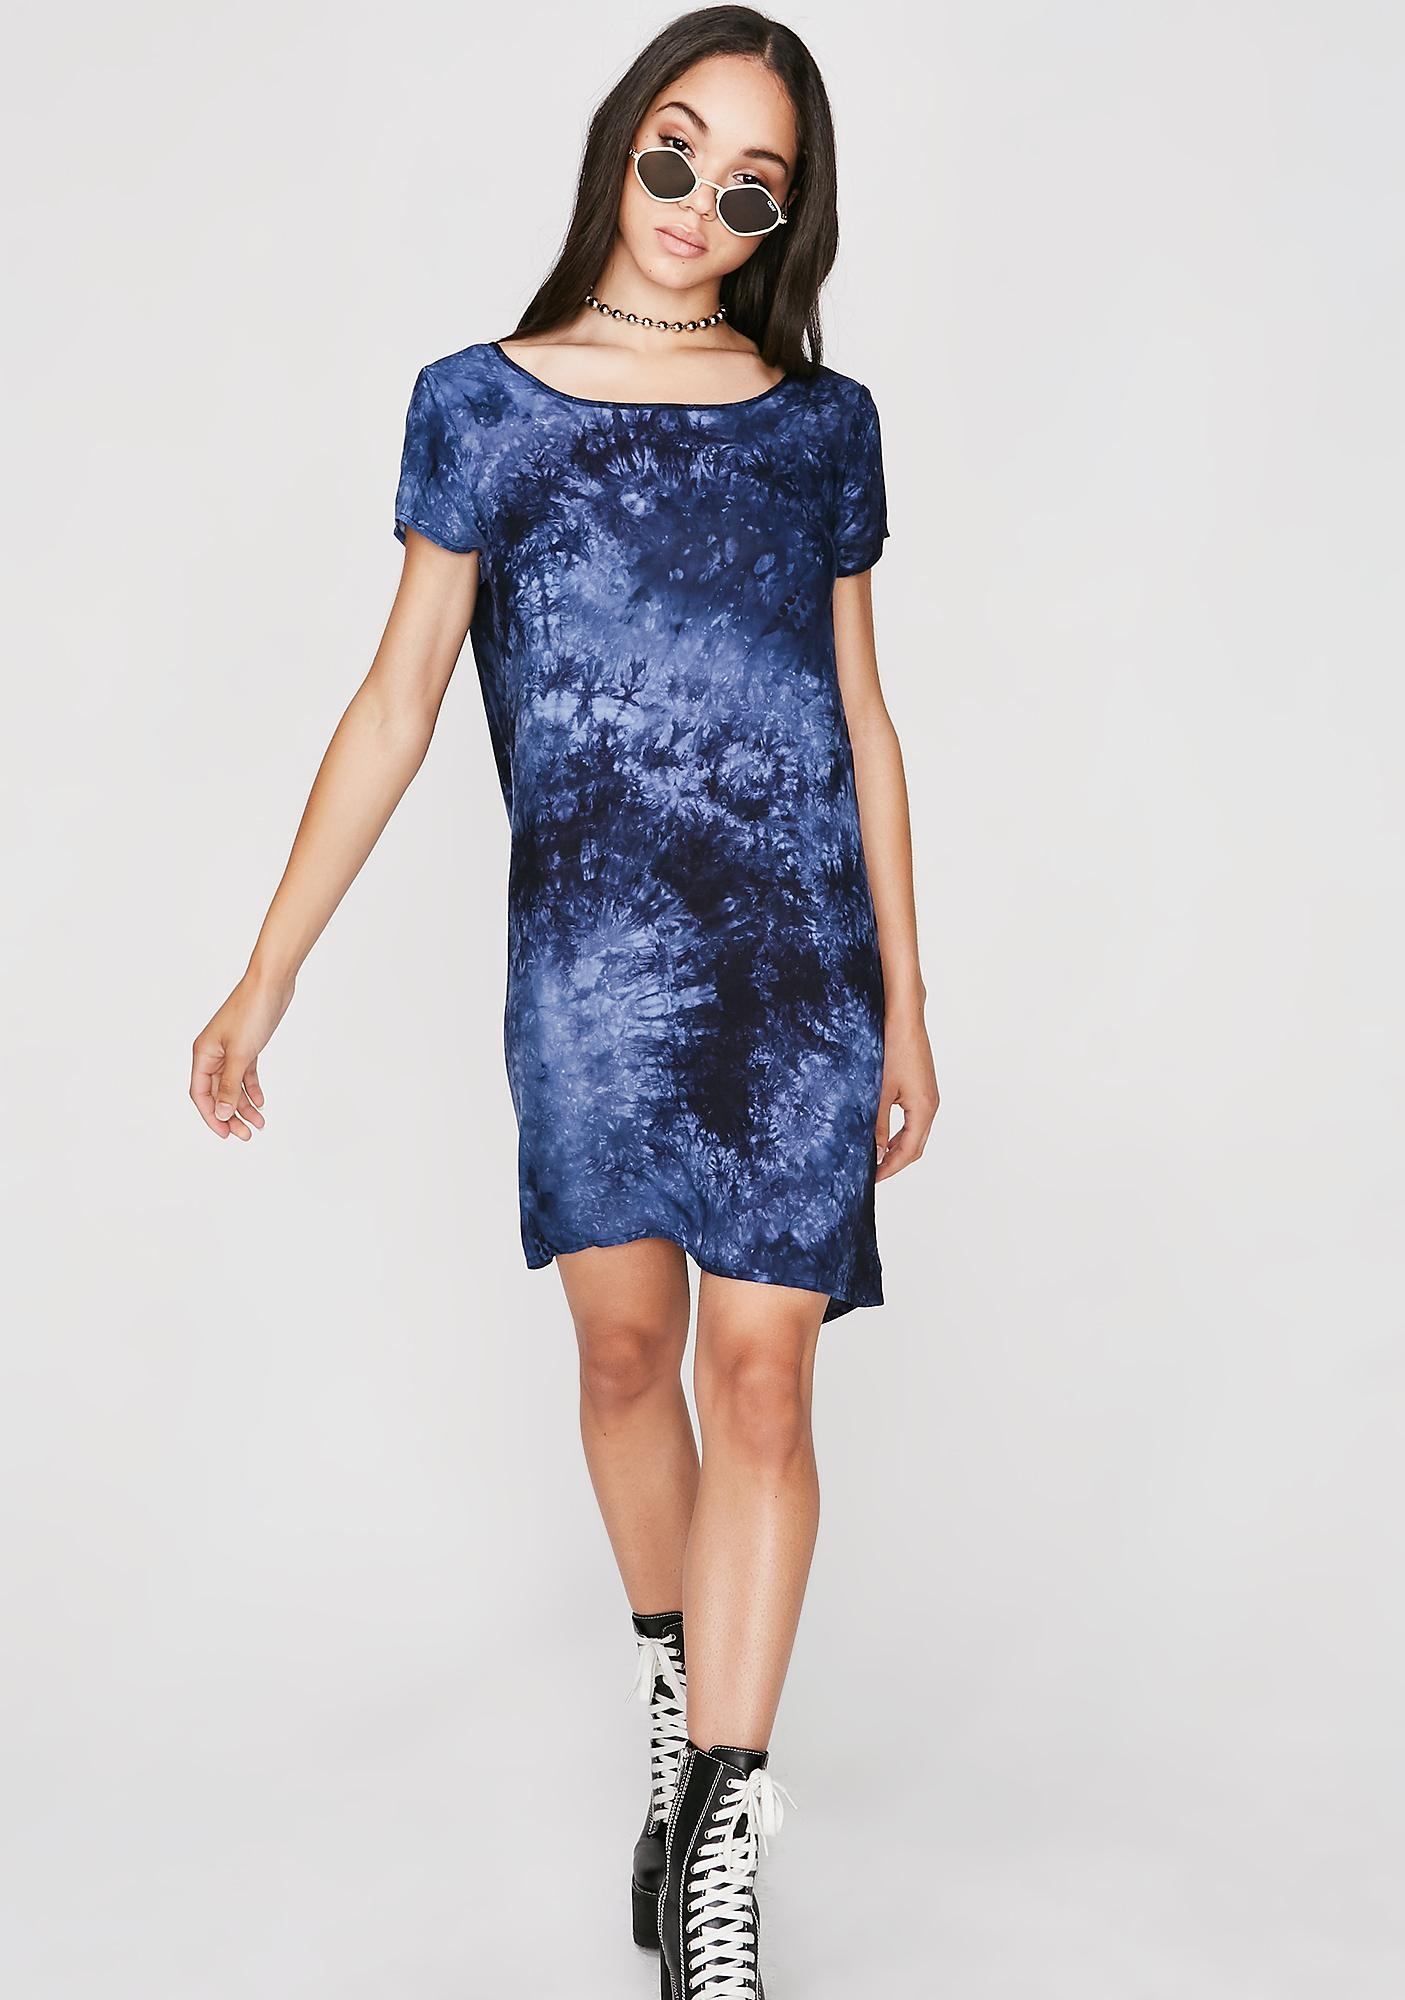 In The Clouds Tie Dye Dress